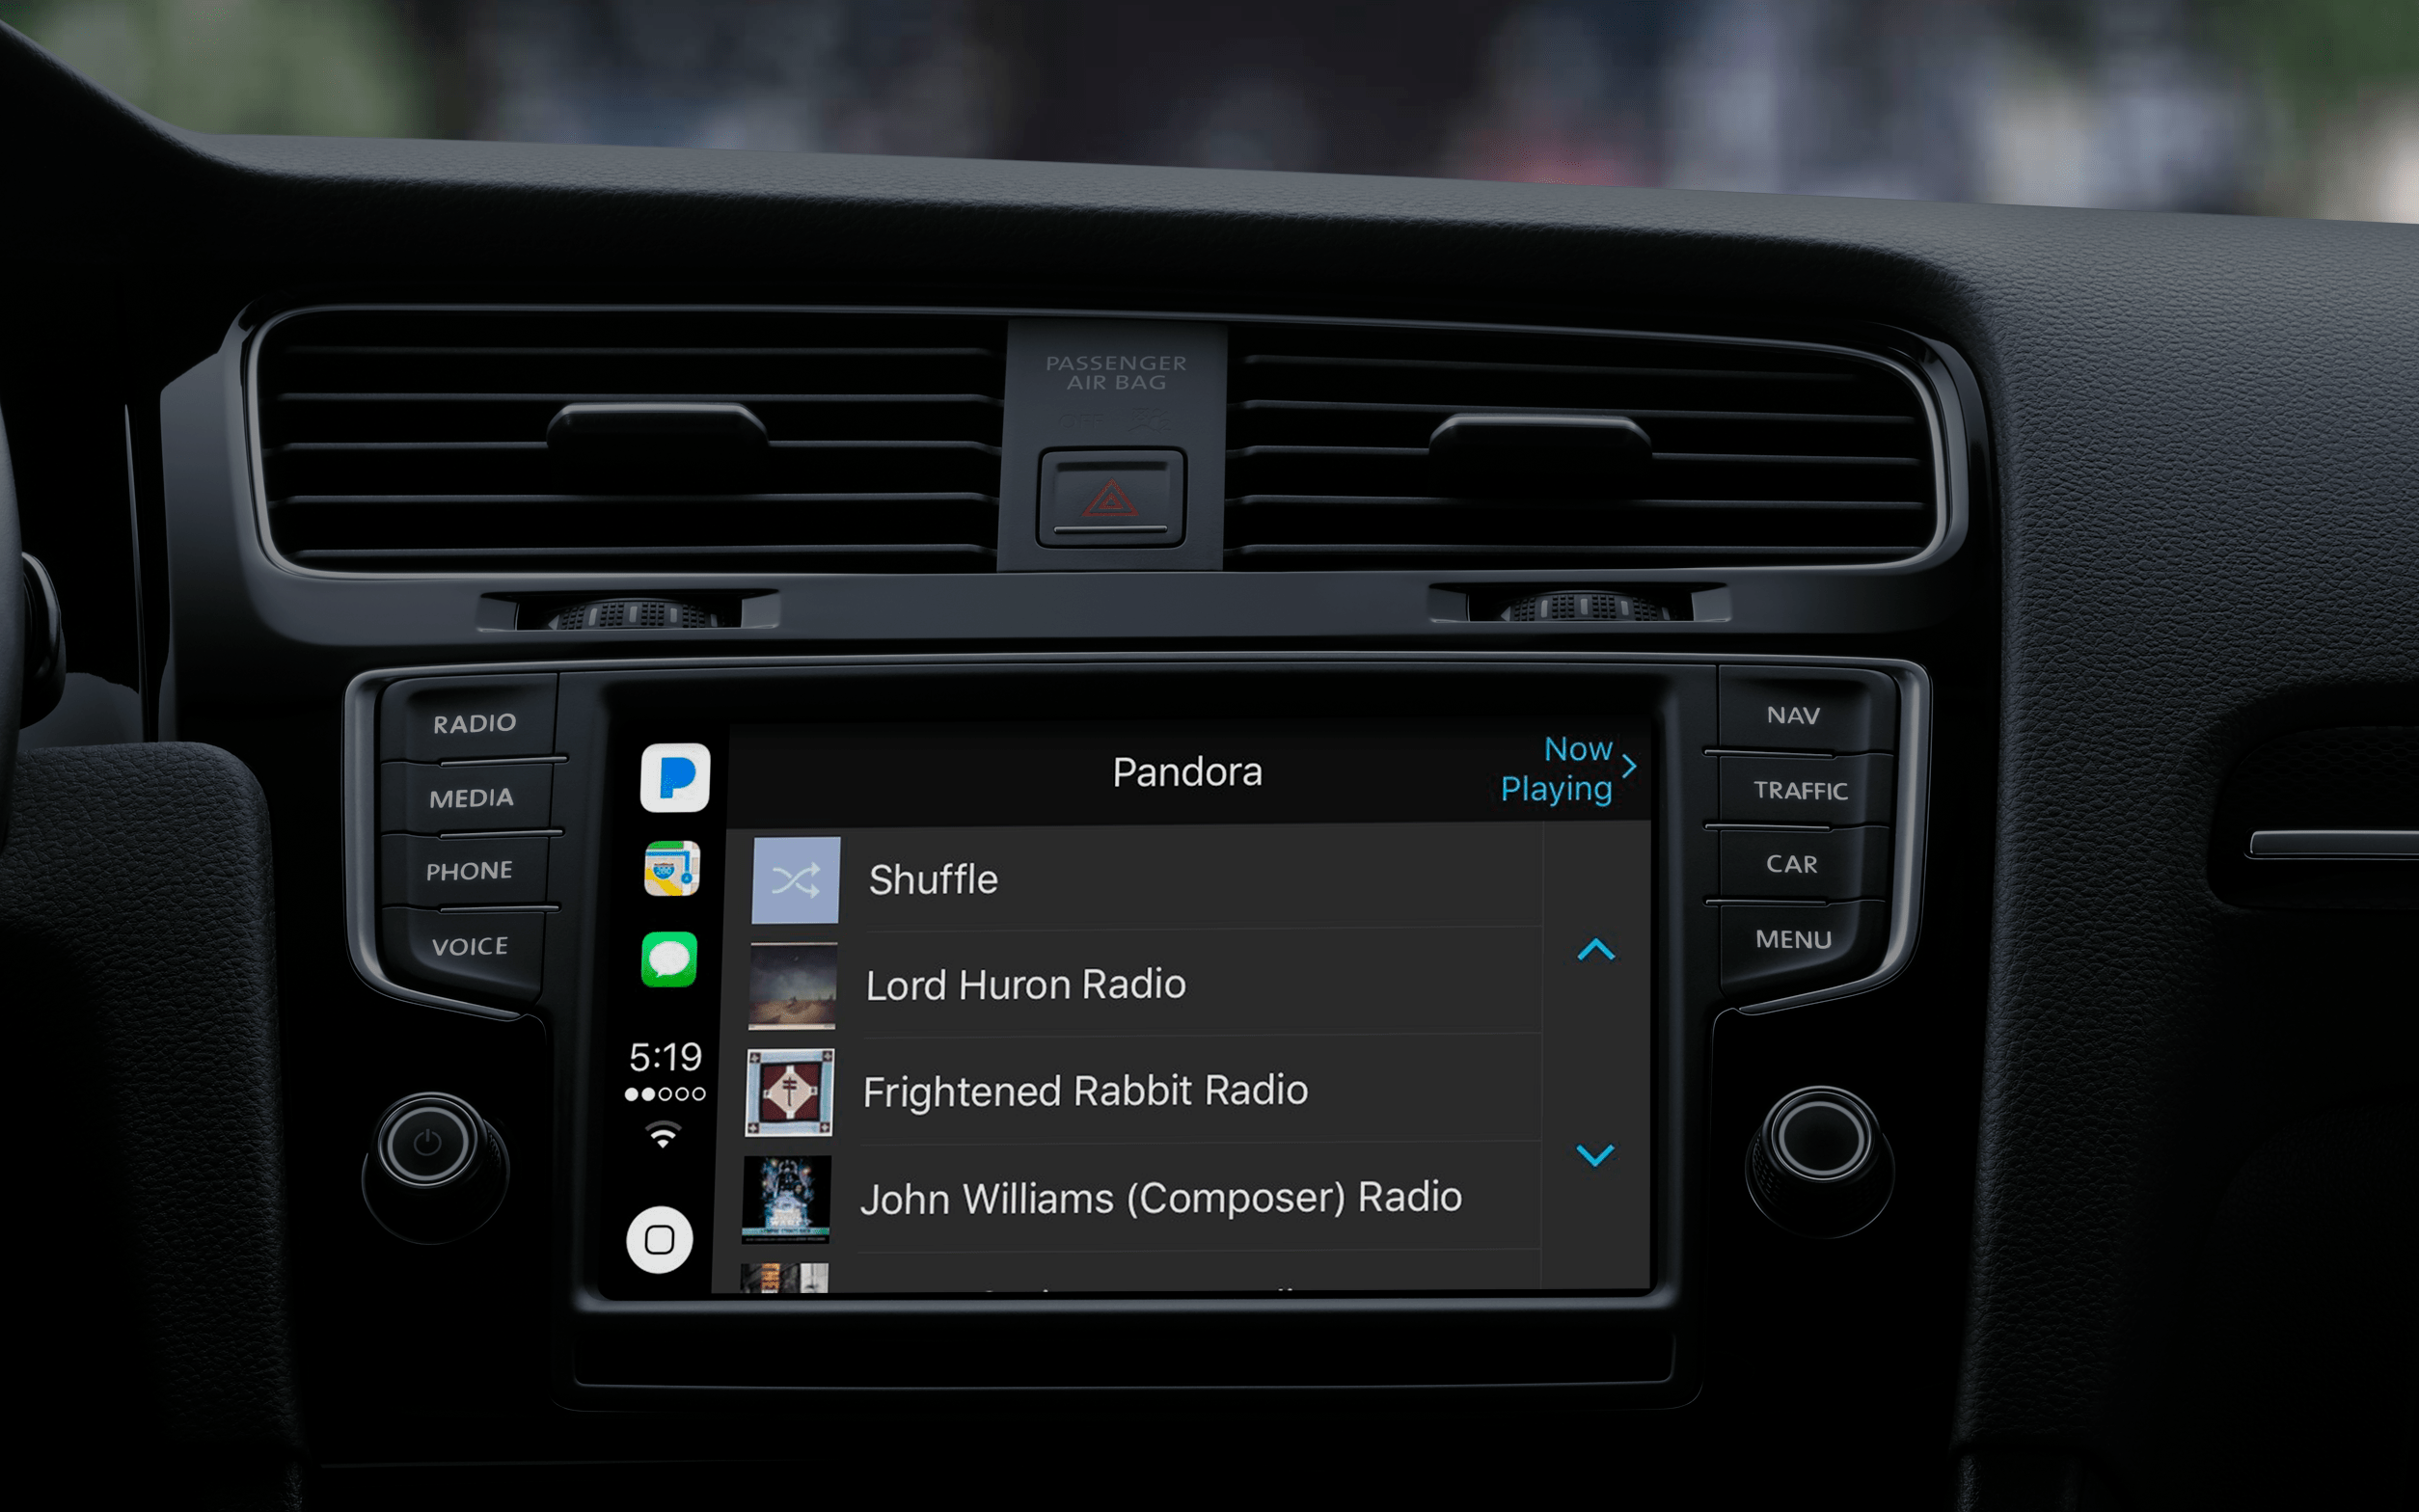 Apps supported by apple CarPlay: Pandora